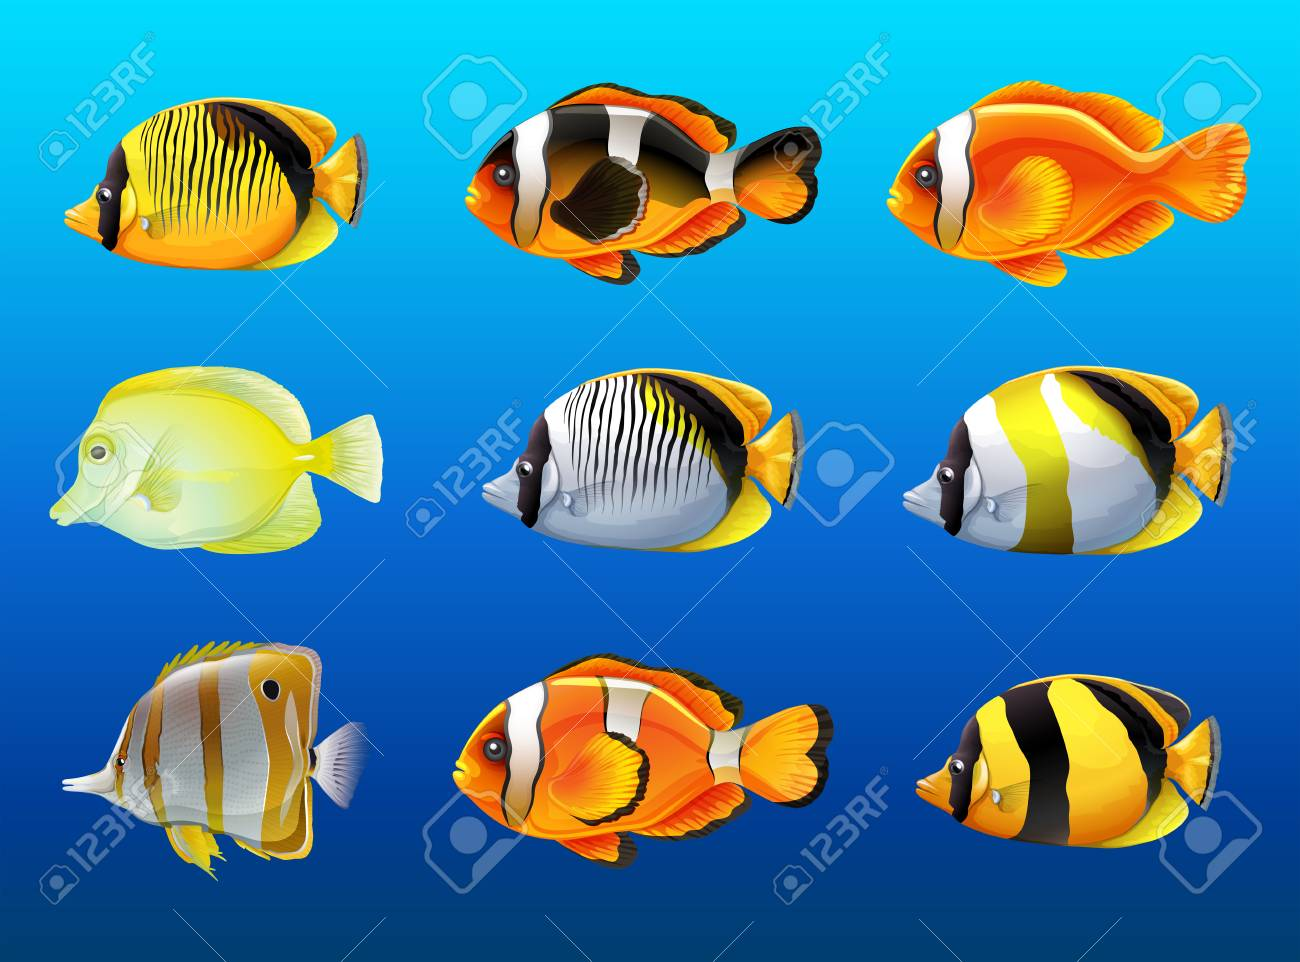 Different kinds of fish under the ocean illustration Stock Vector - 77514944